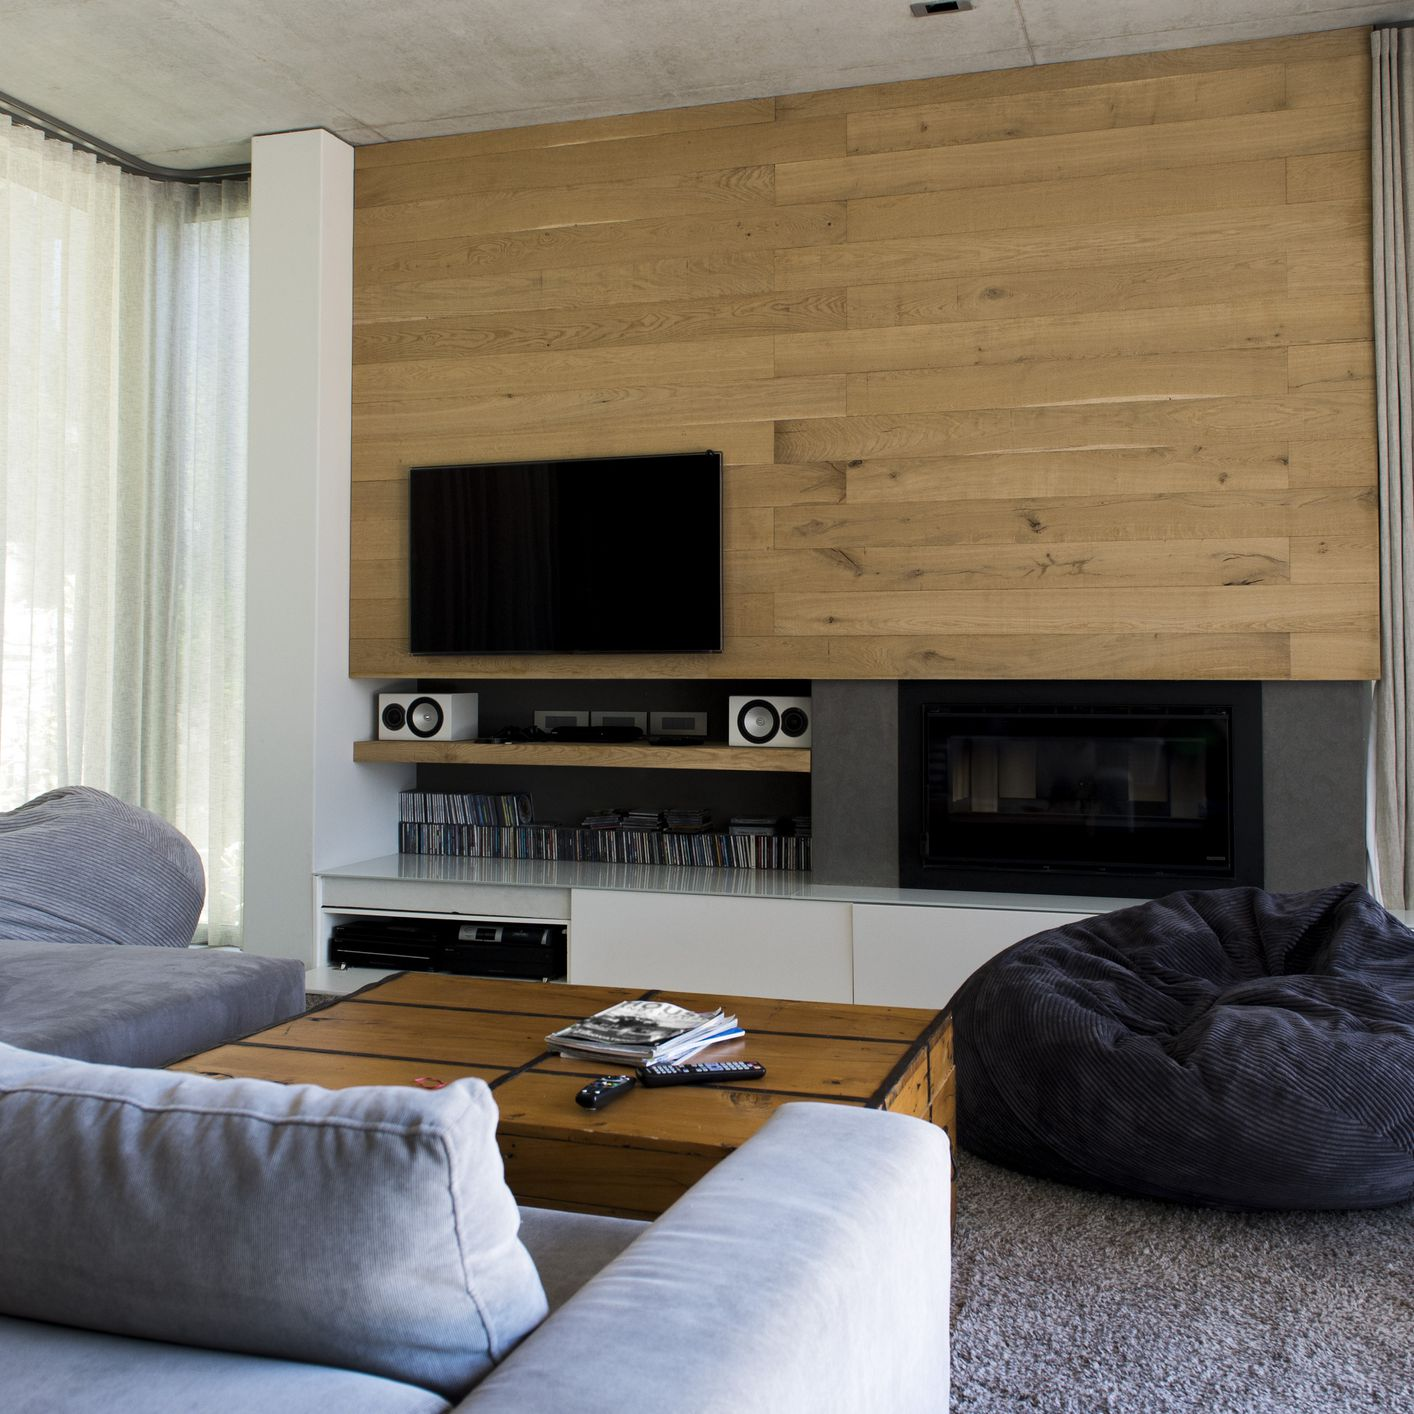 Places To Buy Real Wood Indoor Wall Paneling Online